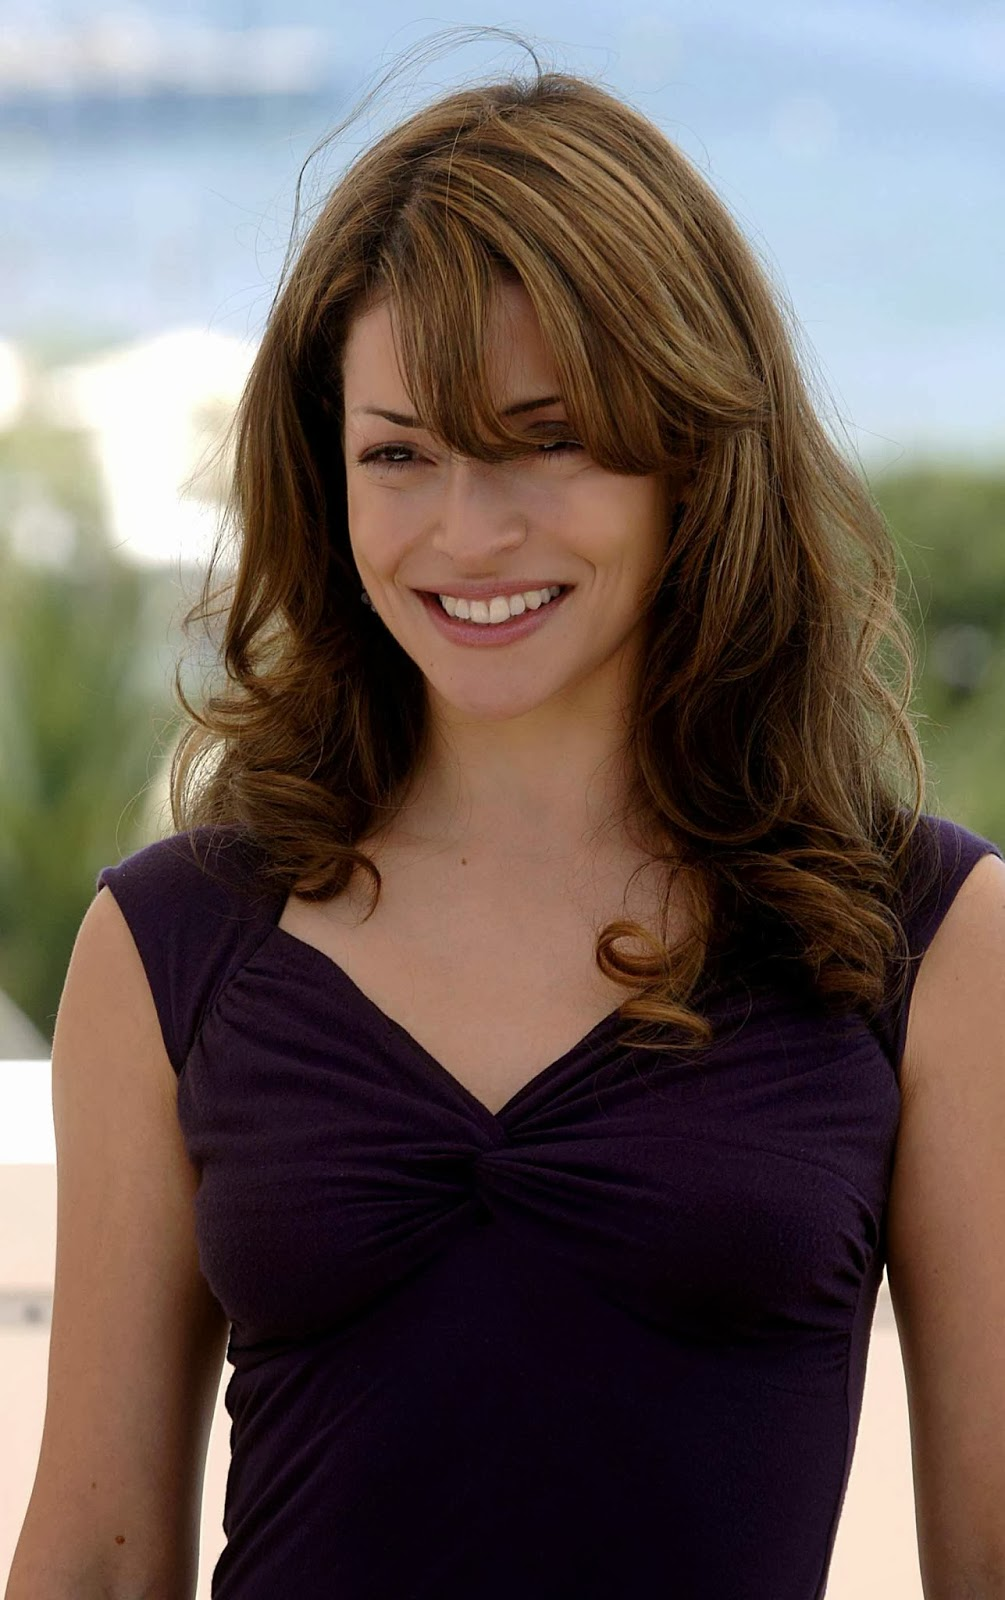 Hd Wallpapers Blog: Emmanuelle Vaugier